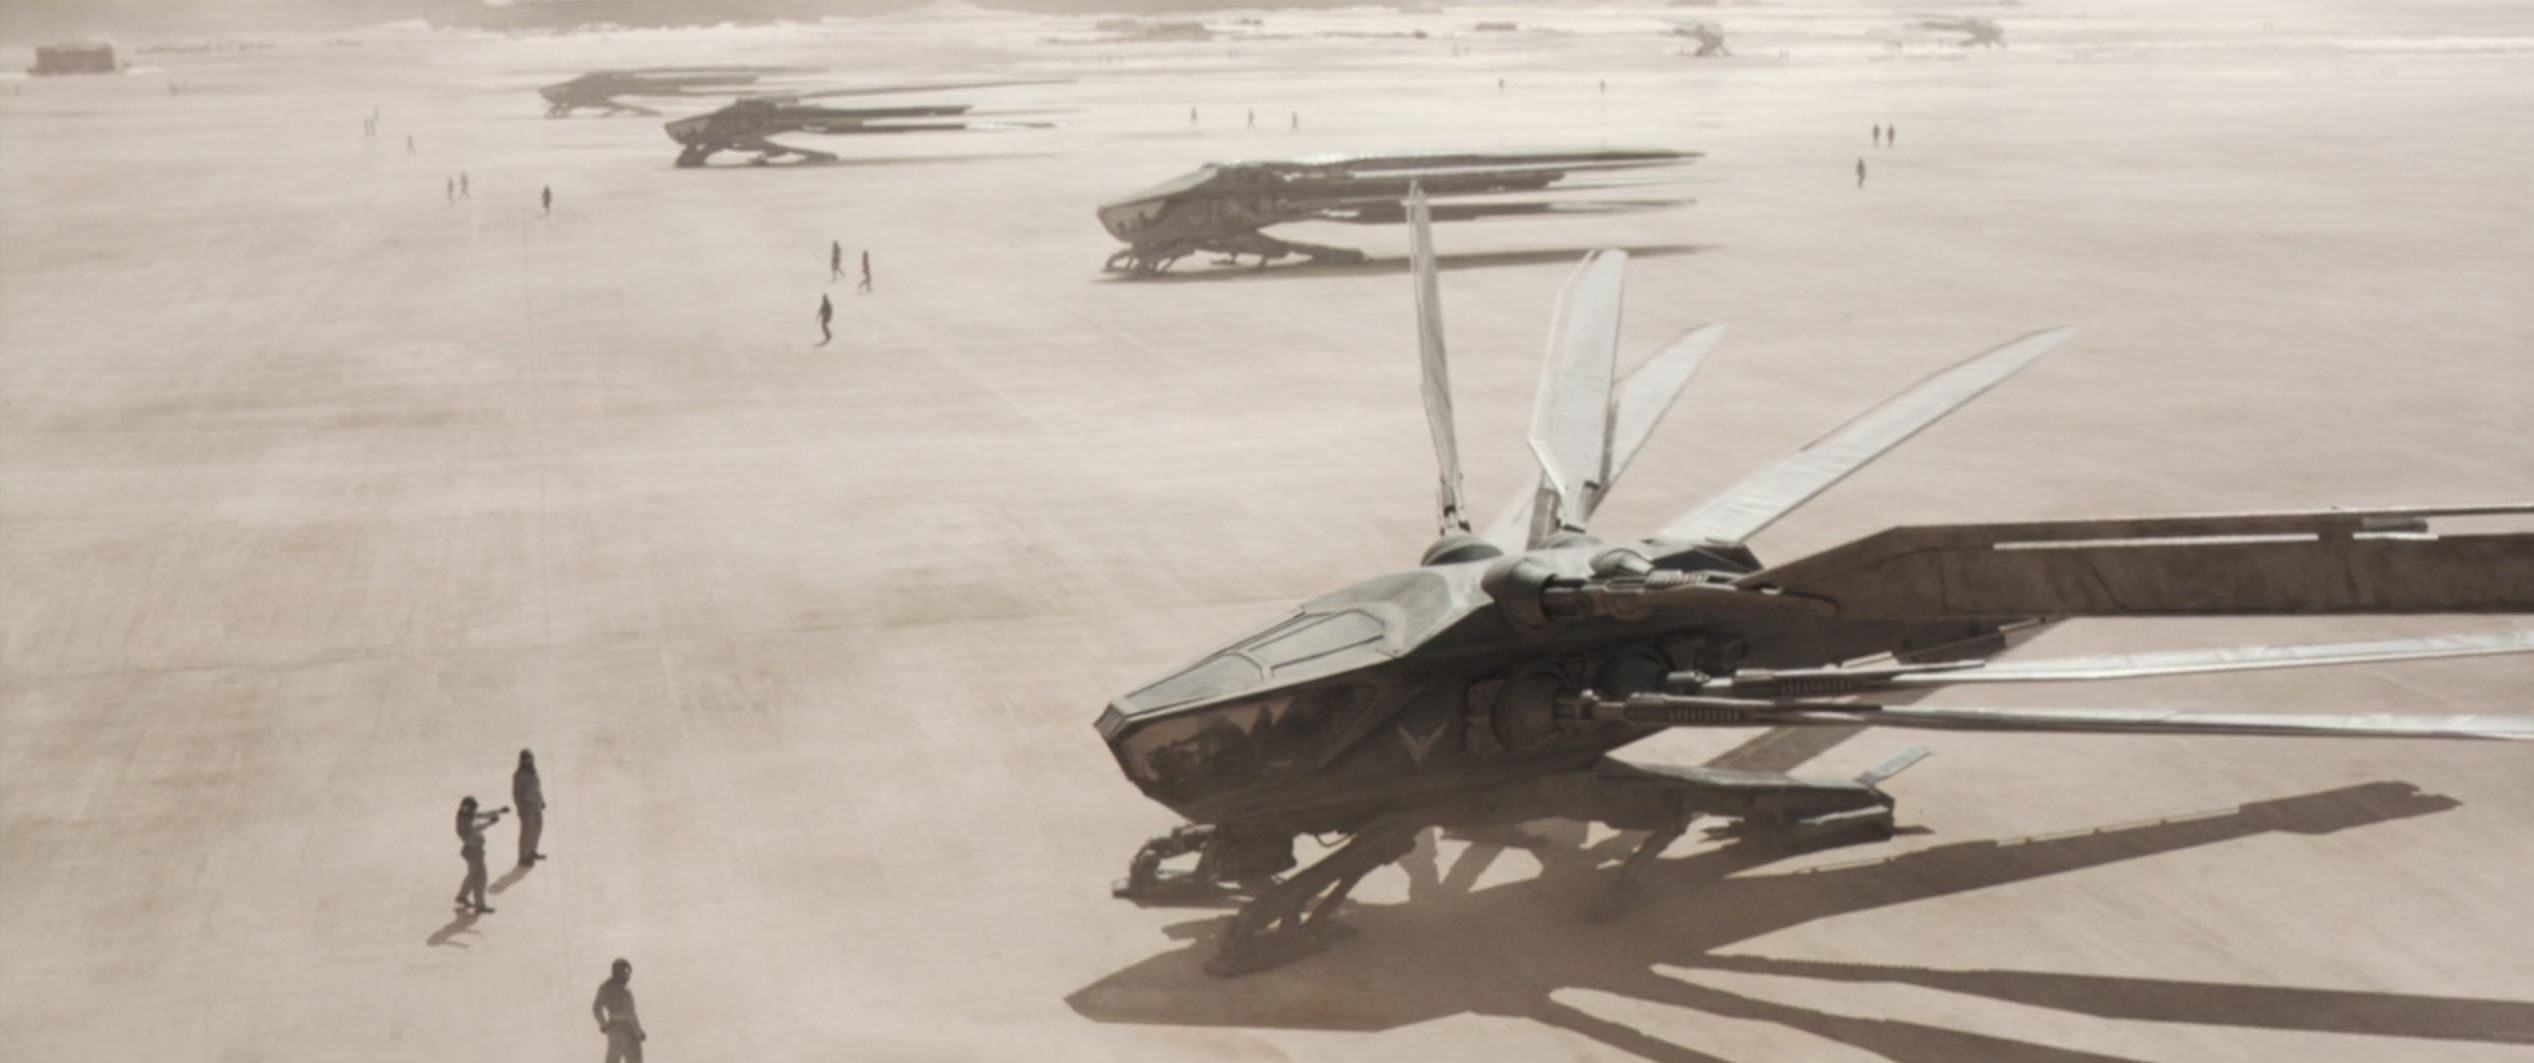 A thopter spools up on the Atreides flight line in Dune.